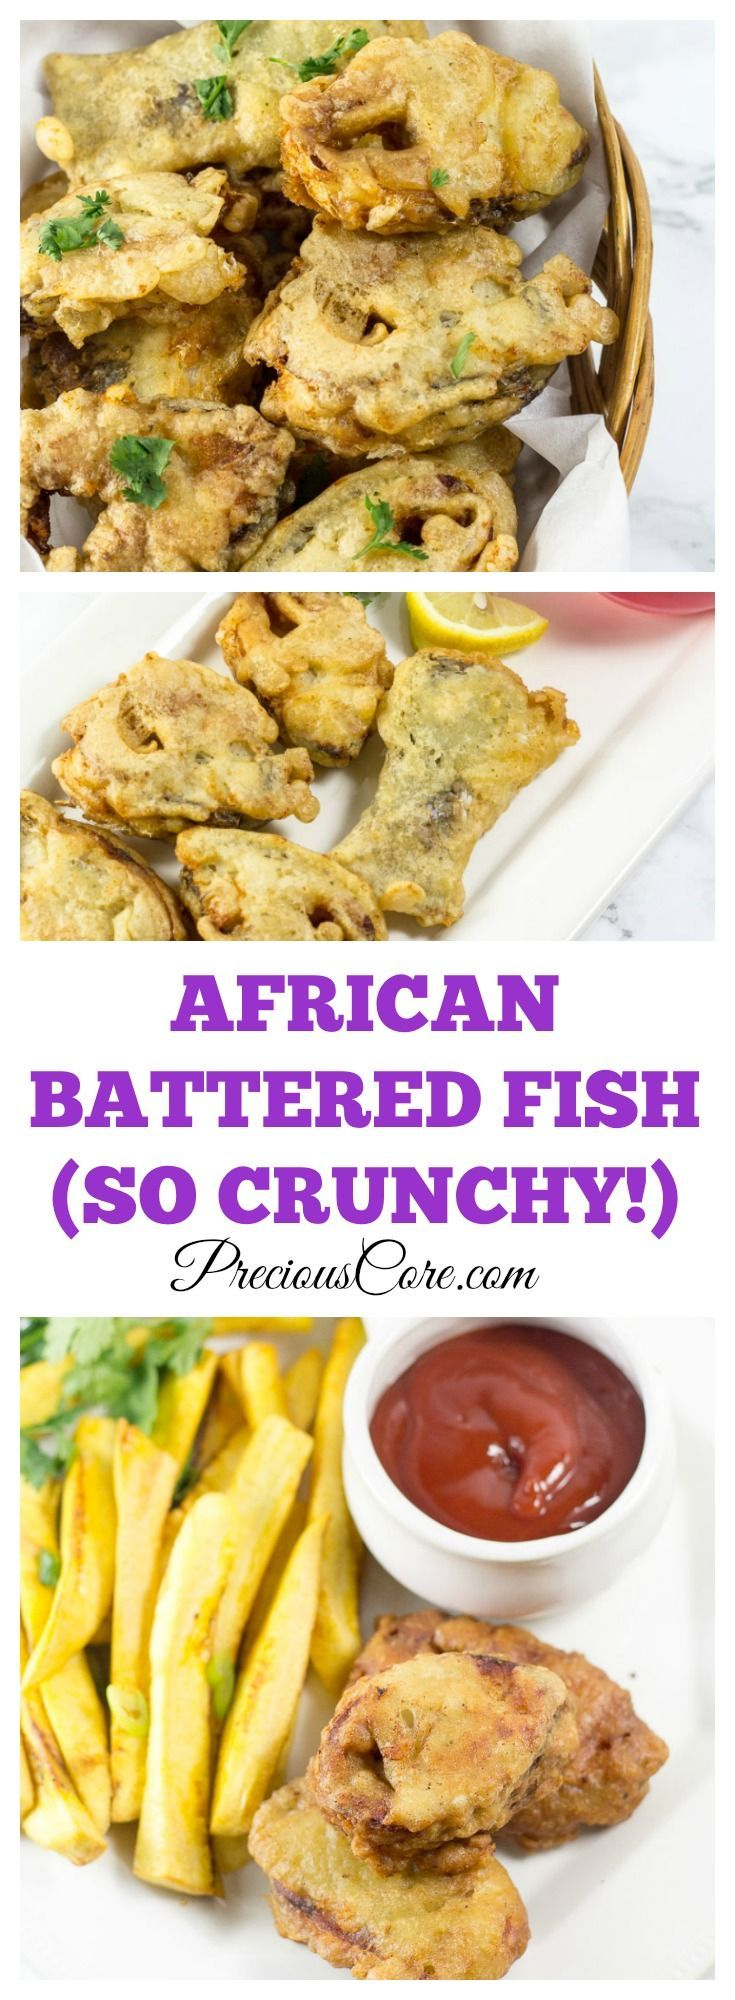 African fish in batter. So crispy and tasty! I love enjoying it with a side of plantain chips.